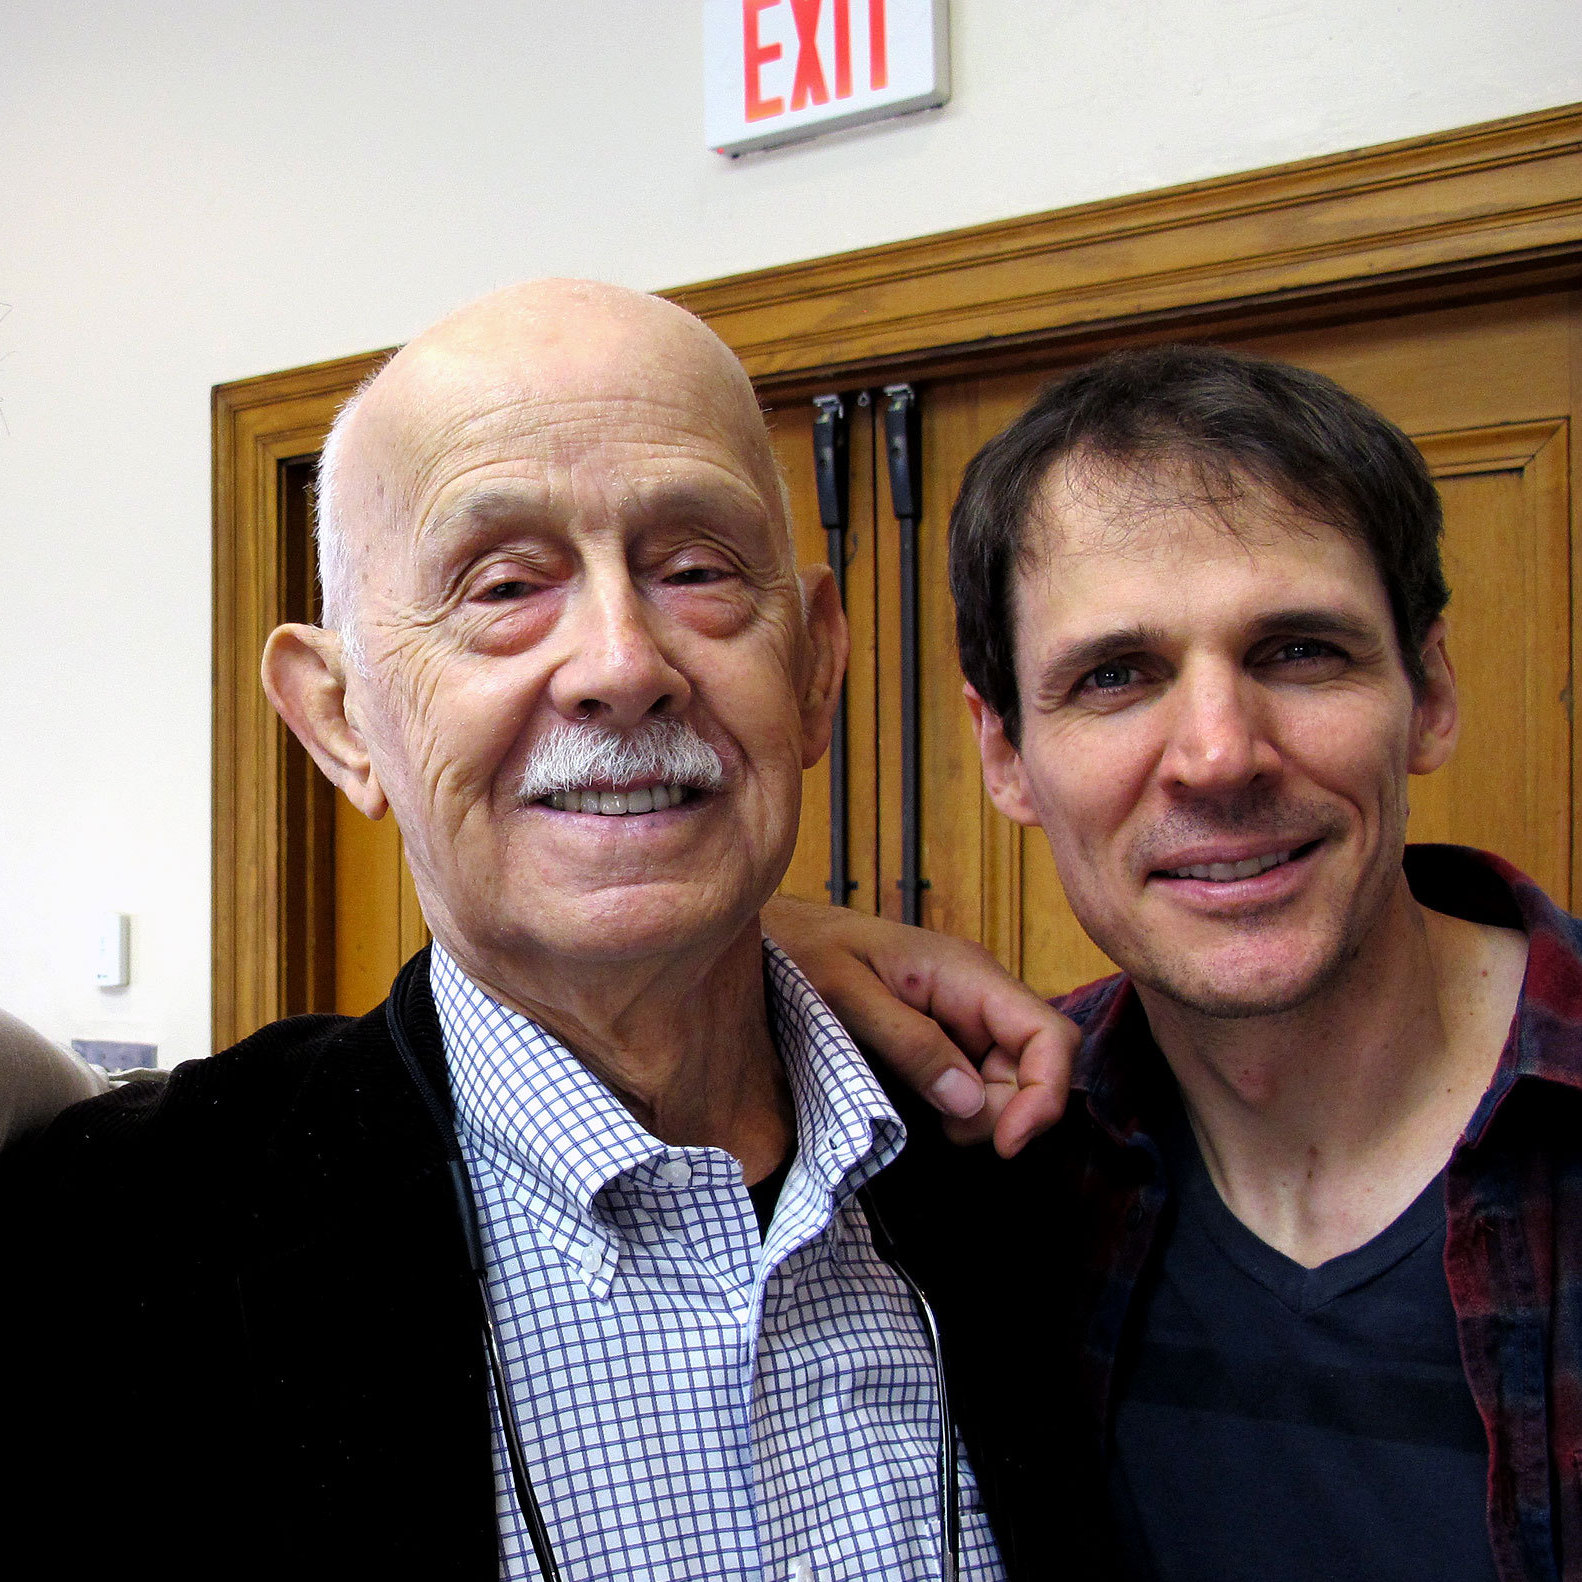 The Beat Generation cast members Tony Crane (left) and Joel Collins (right) with literary executor of the Kerouac estate John Sampas.